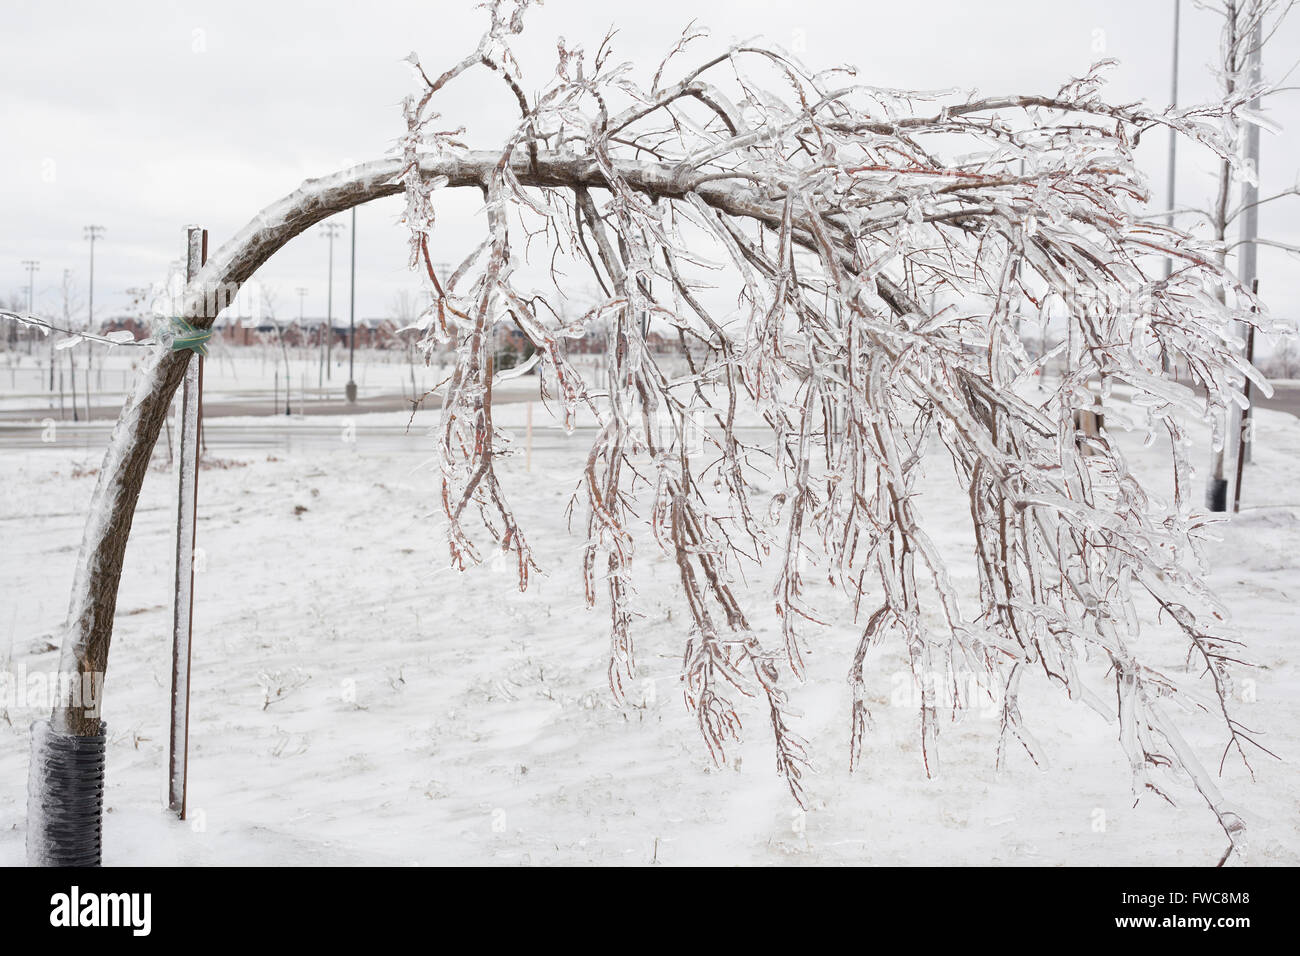 tree bent over from heavy branches  in winter after an ice storm - Stock Image